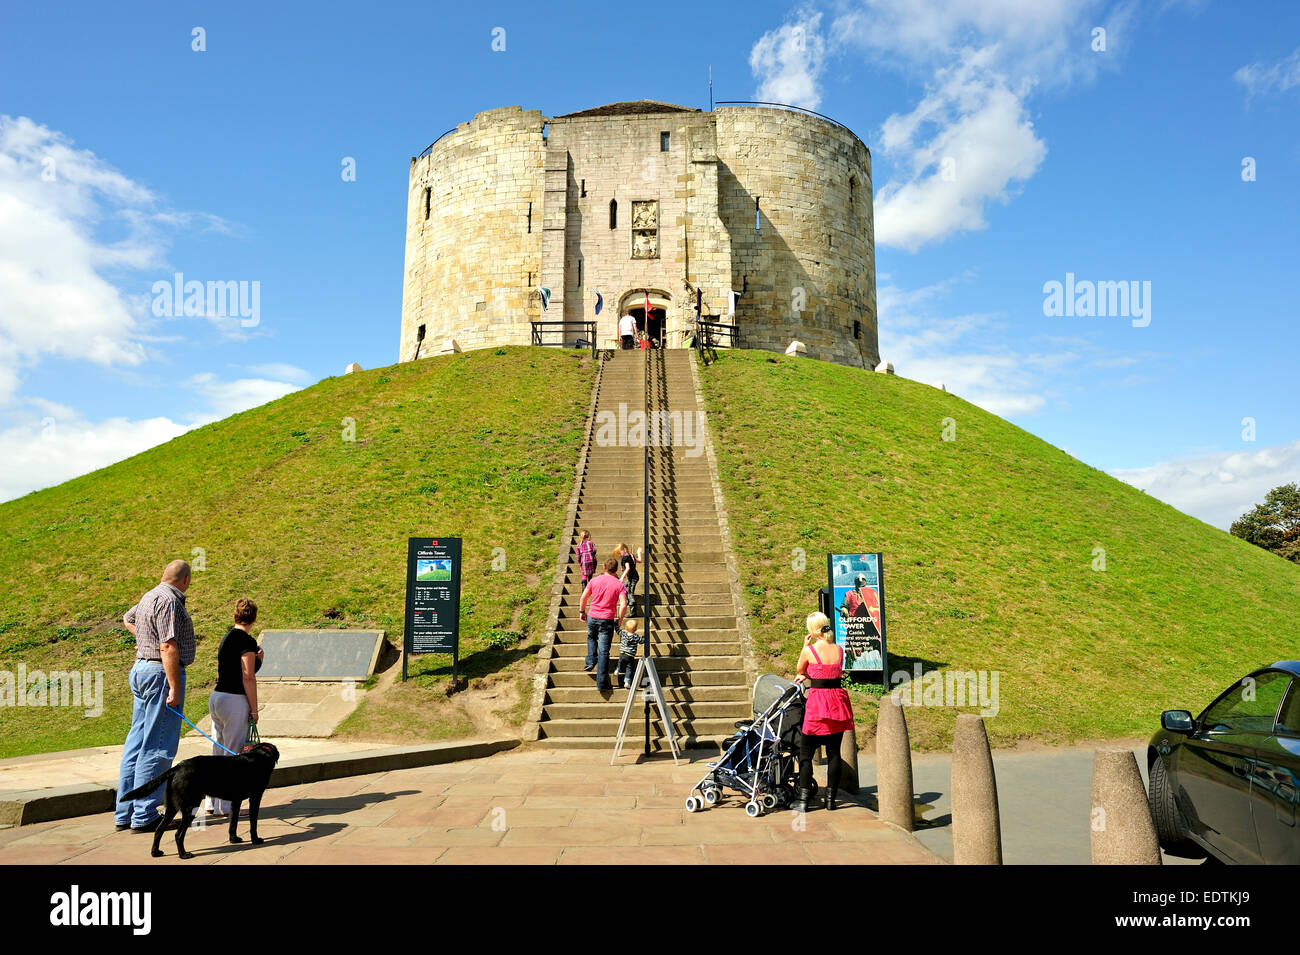 CLIFFORD'S TOWER YORK YORKSHIRE ENGLAND UK - Stock Image